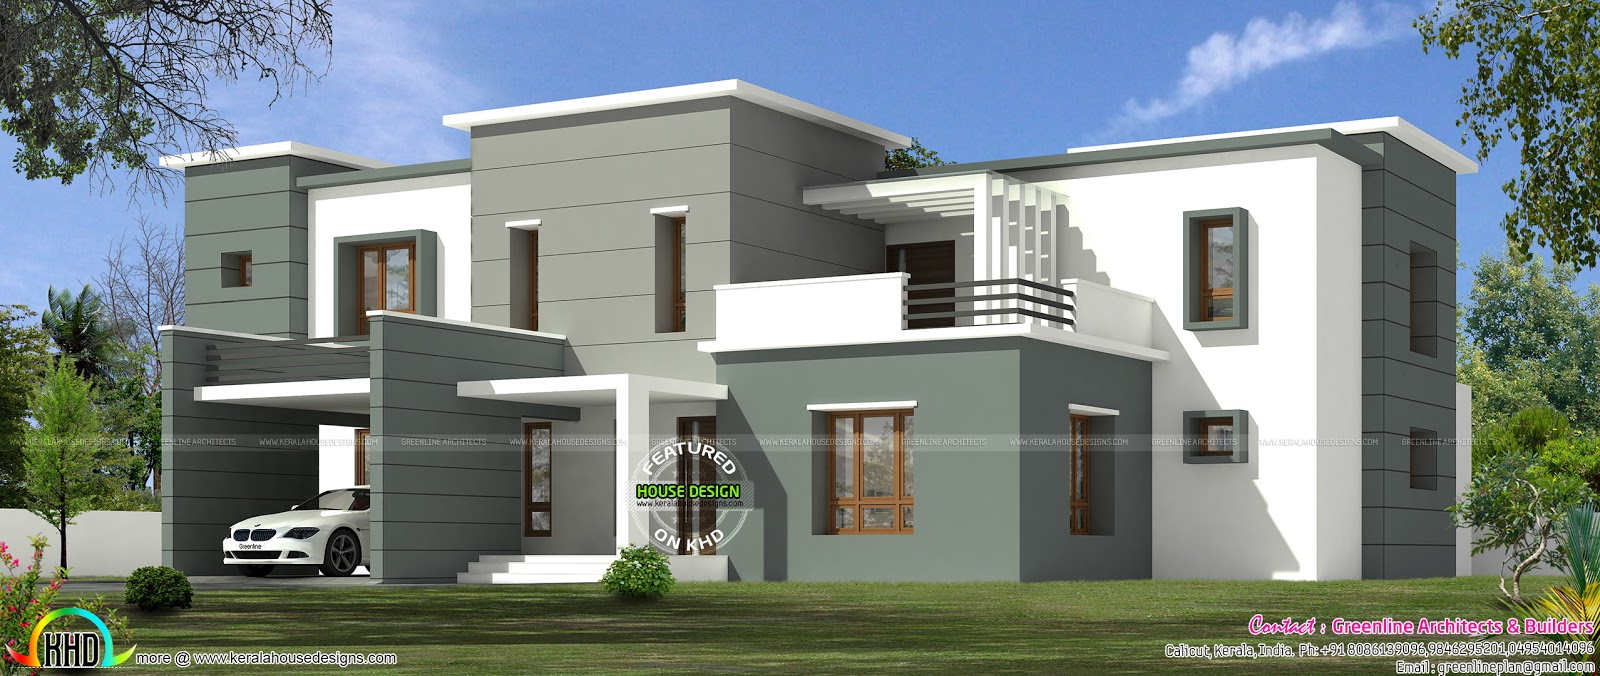 Modern box model 3289 sq ft kerala home design and floor for Modern box house design